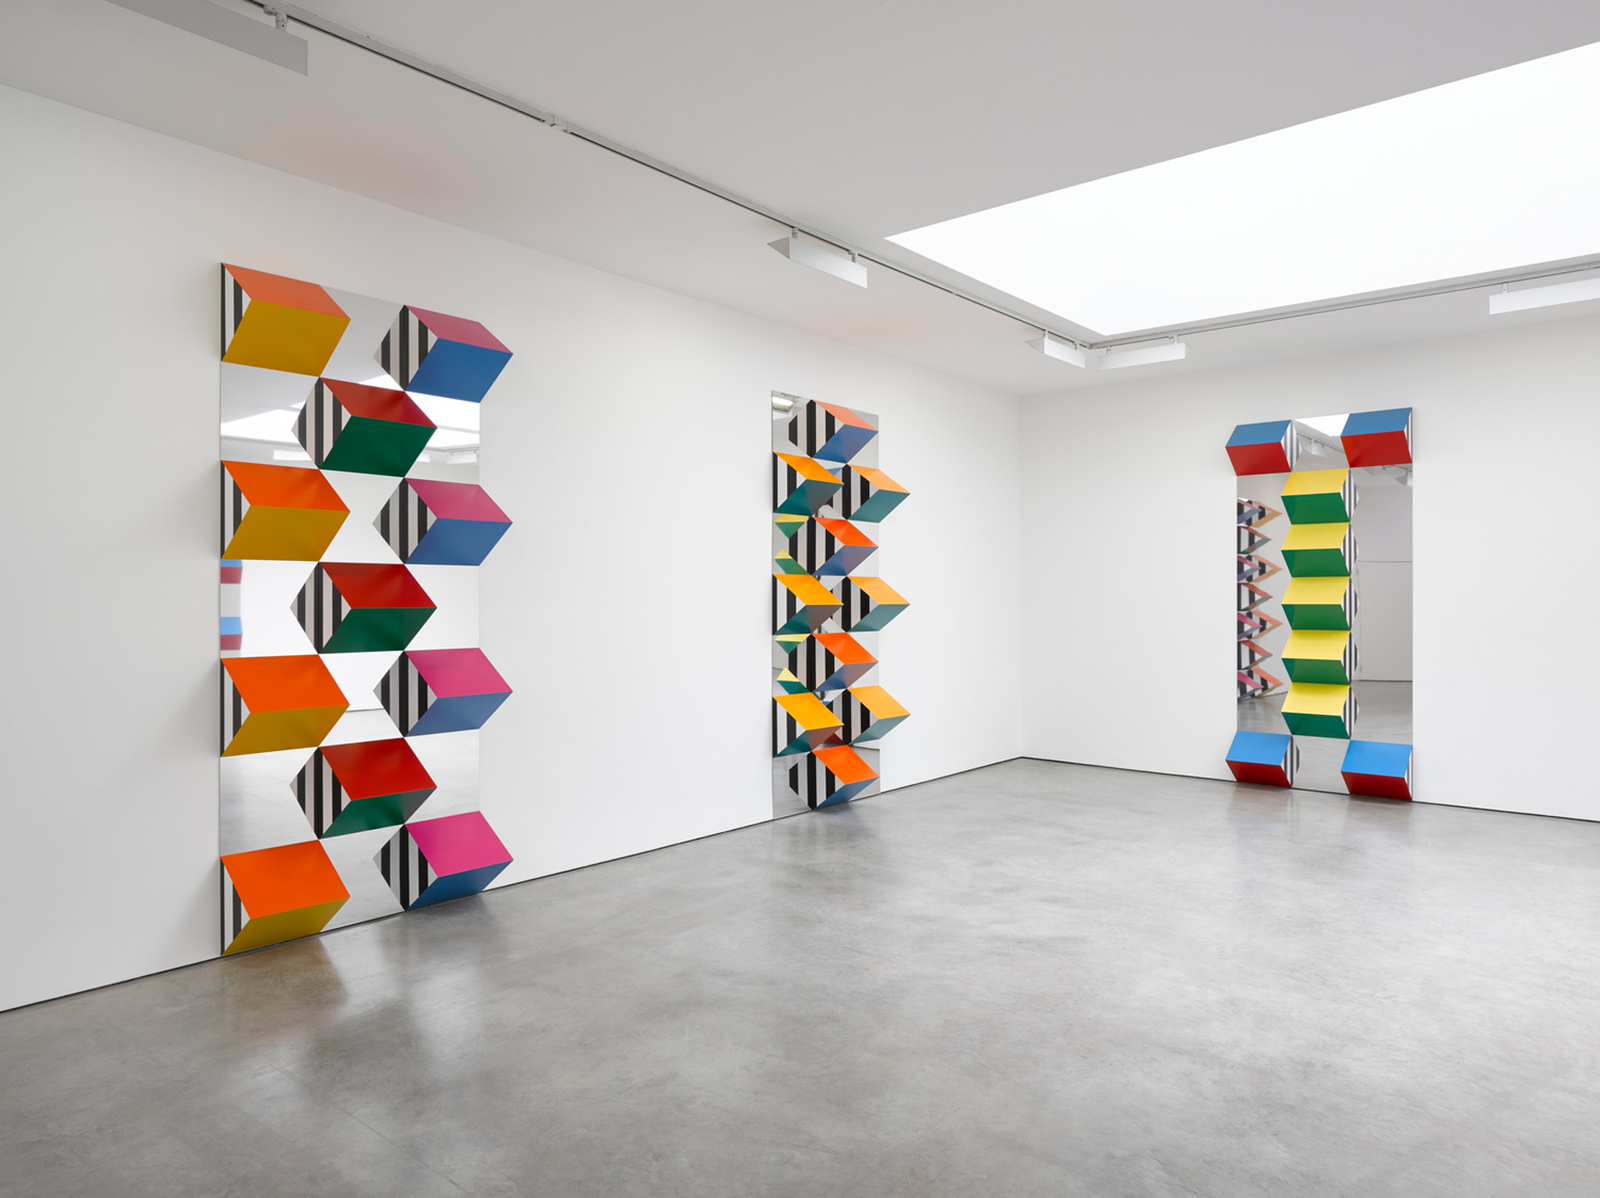 Daniel Buren, <em>PILE UP: High Reliefs</em> installation view, Lisson Gallery London, 2017